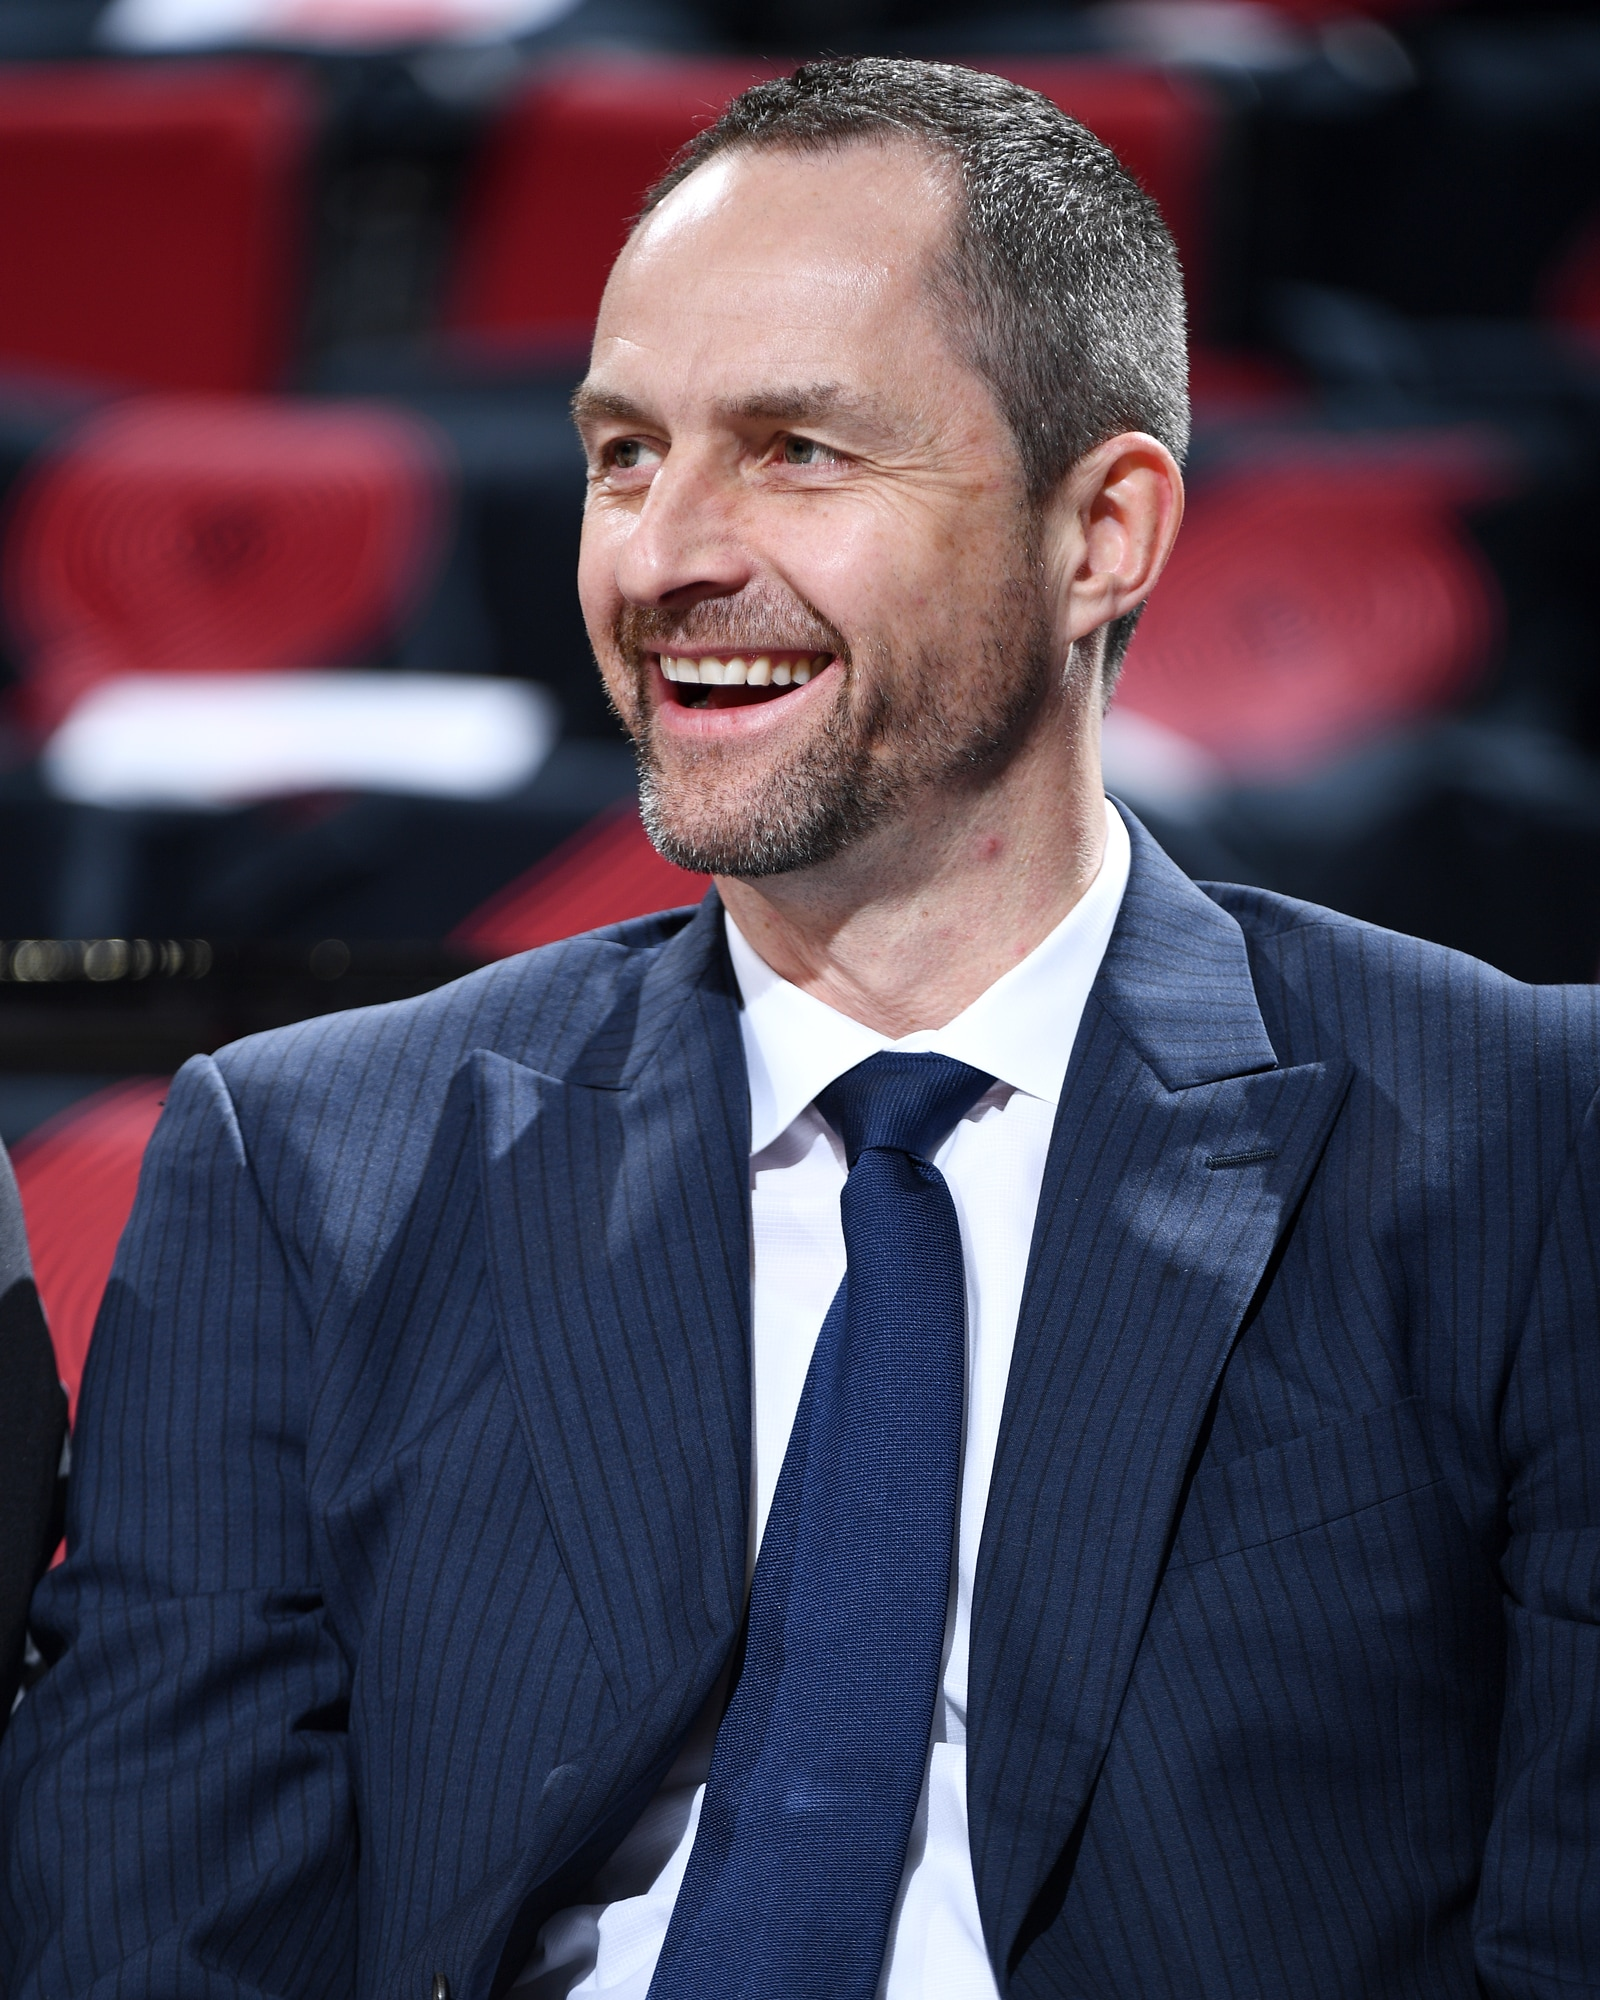 Karnisovas spent seven years as an executive with the Denver Nuggets